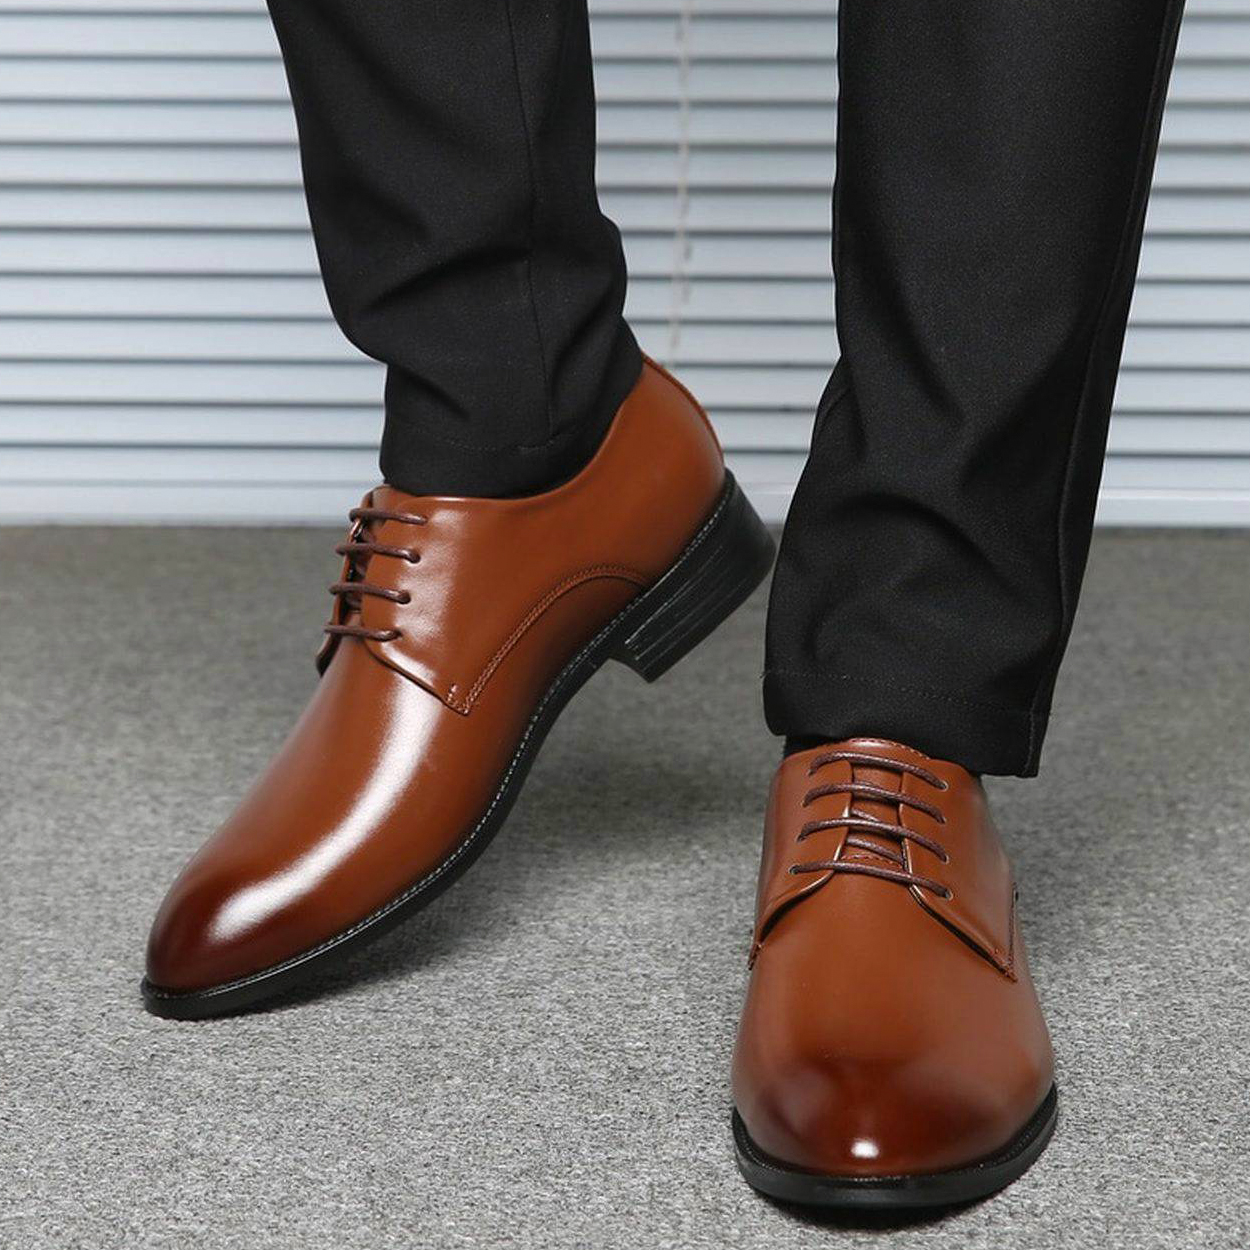 the right shade of black pants and brown shoes